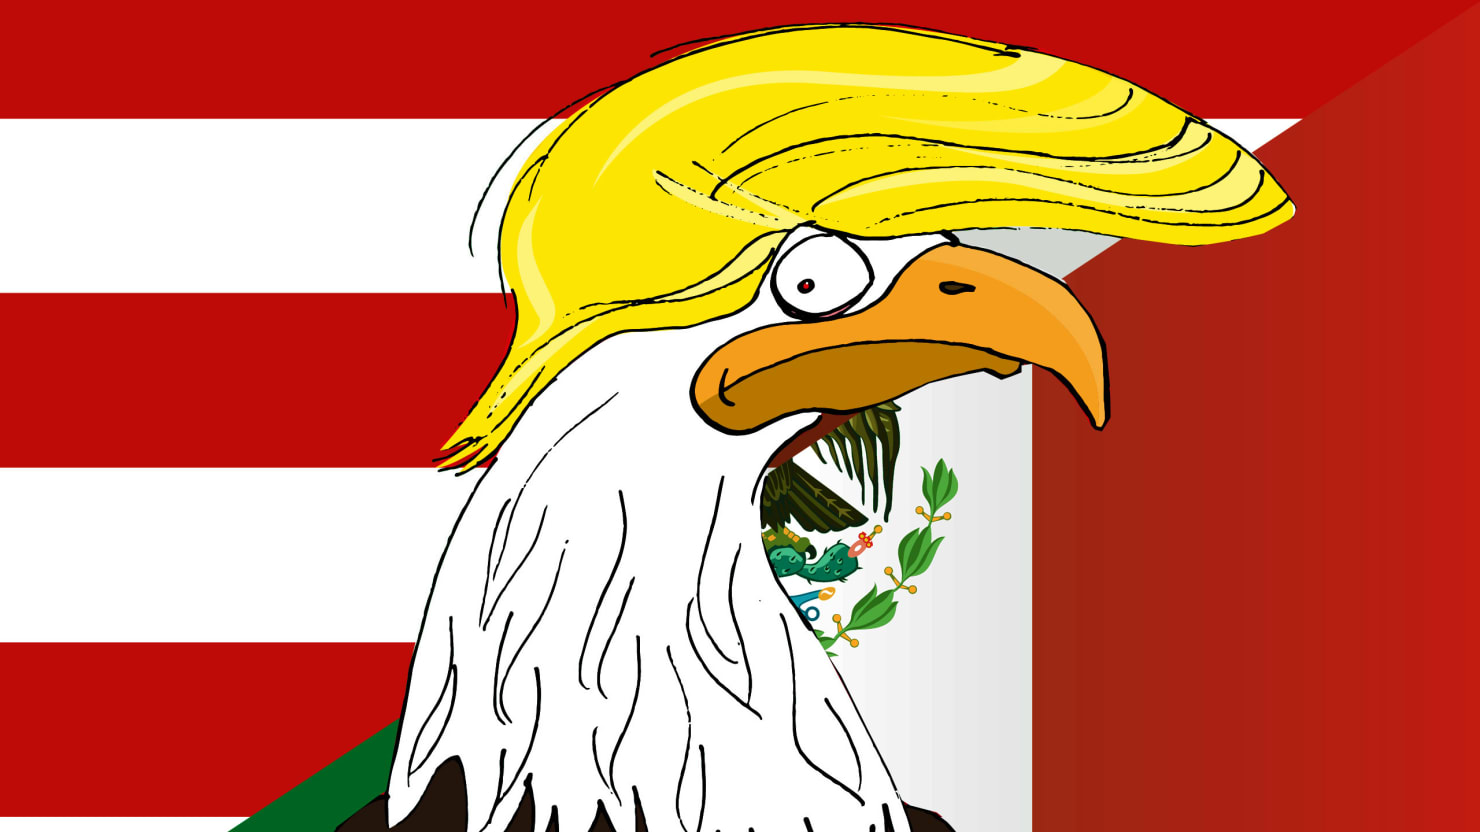 Forum on this topic: Mexico, mexico/